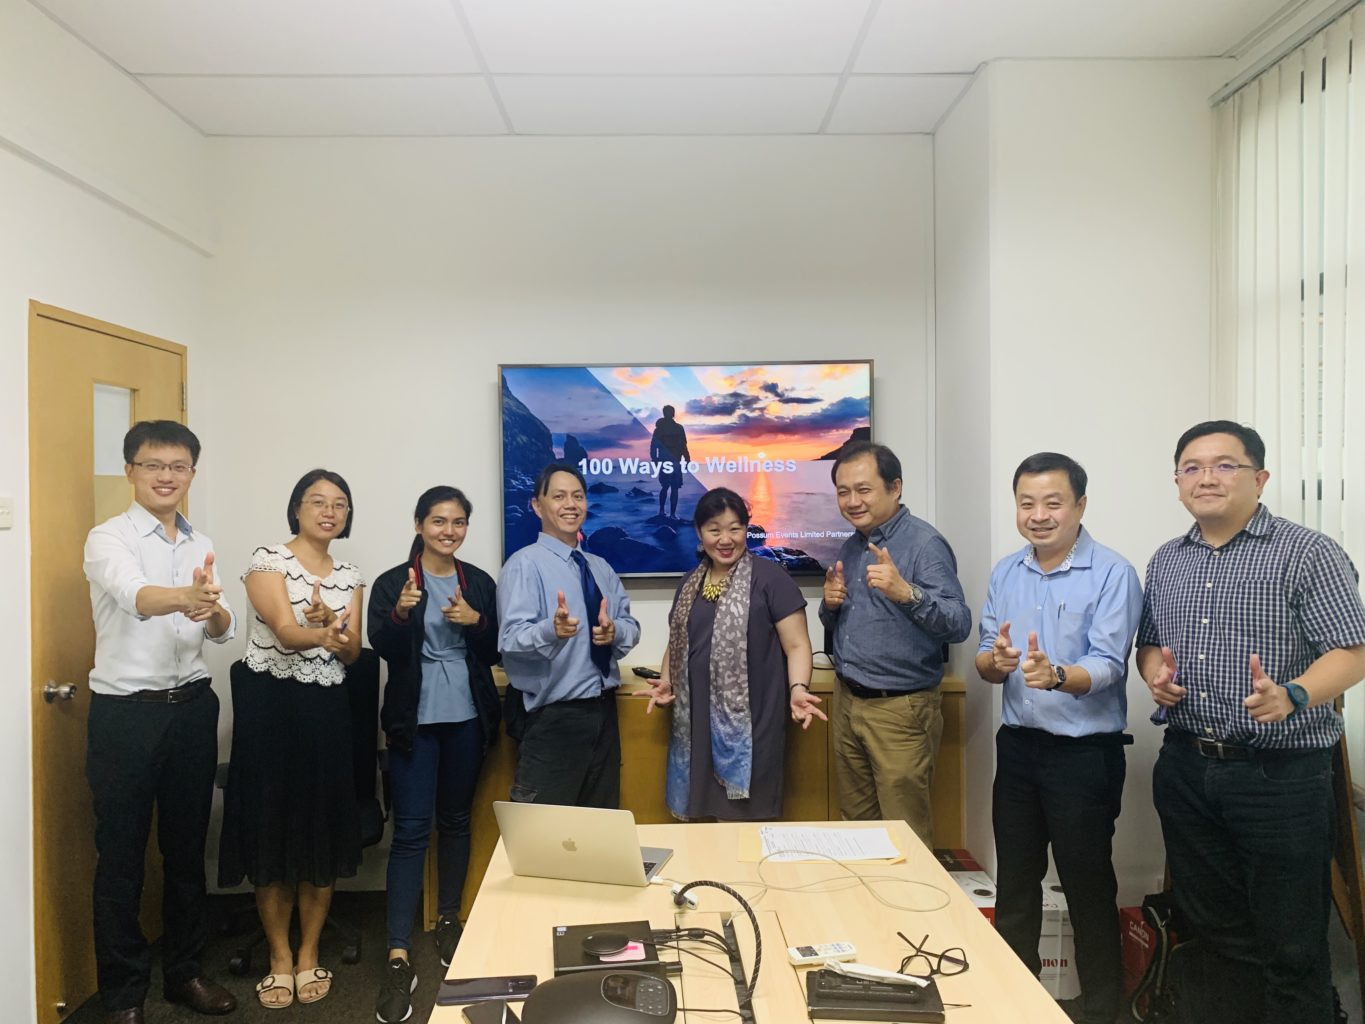 WME Complete Knowledge Week Singapore